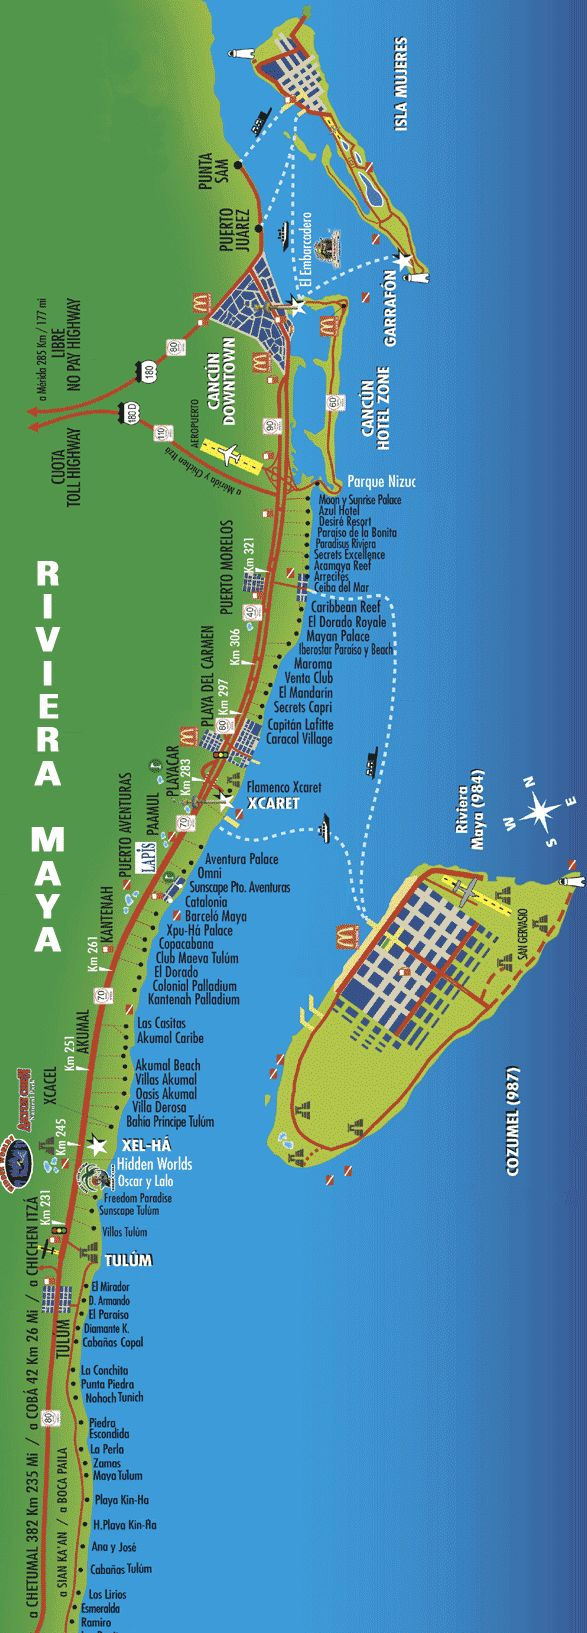 Riveria Maya, Mexico - I stayed at Xpu-Ha Palace and Aventura Palace in 2002 and they were amazing!!